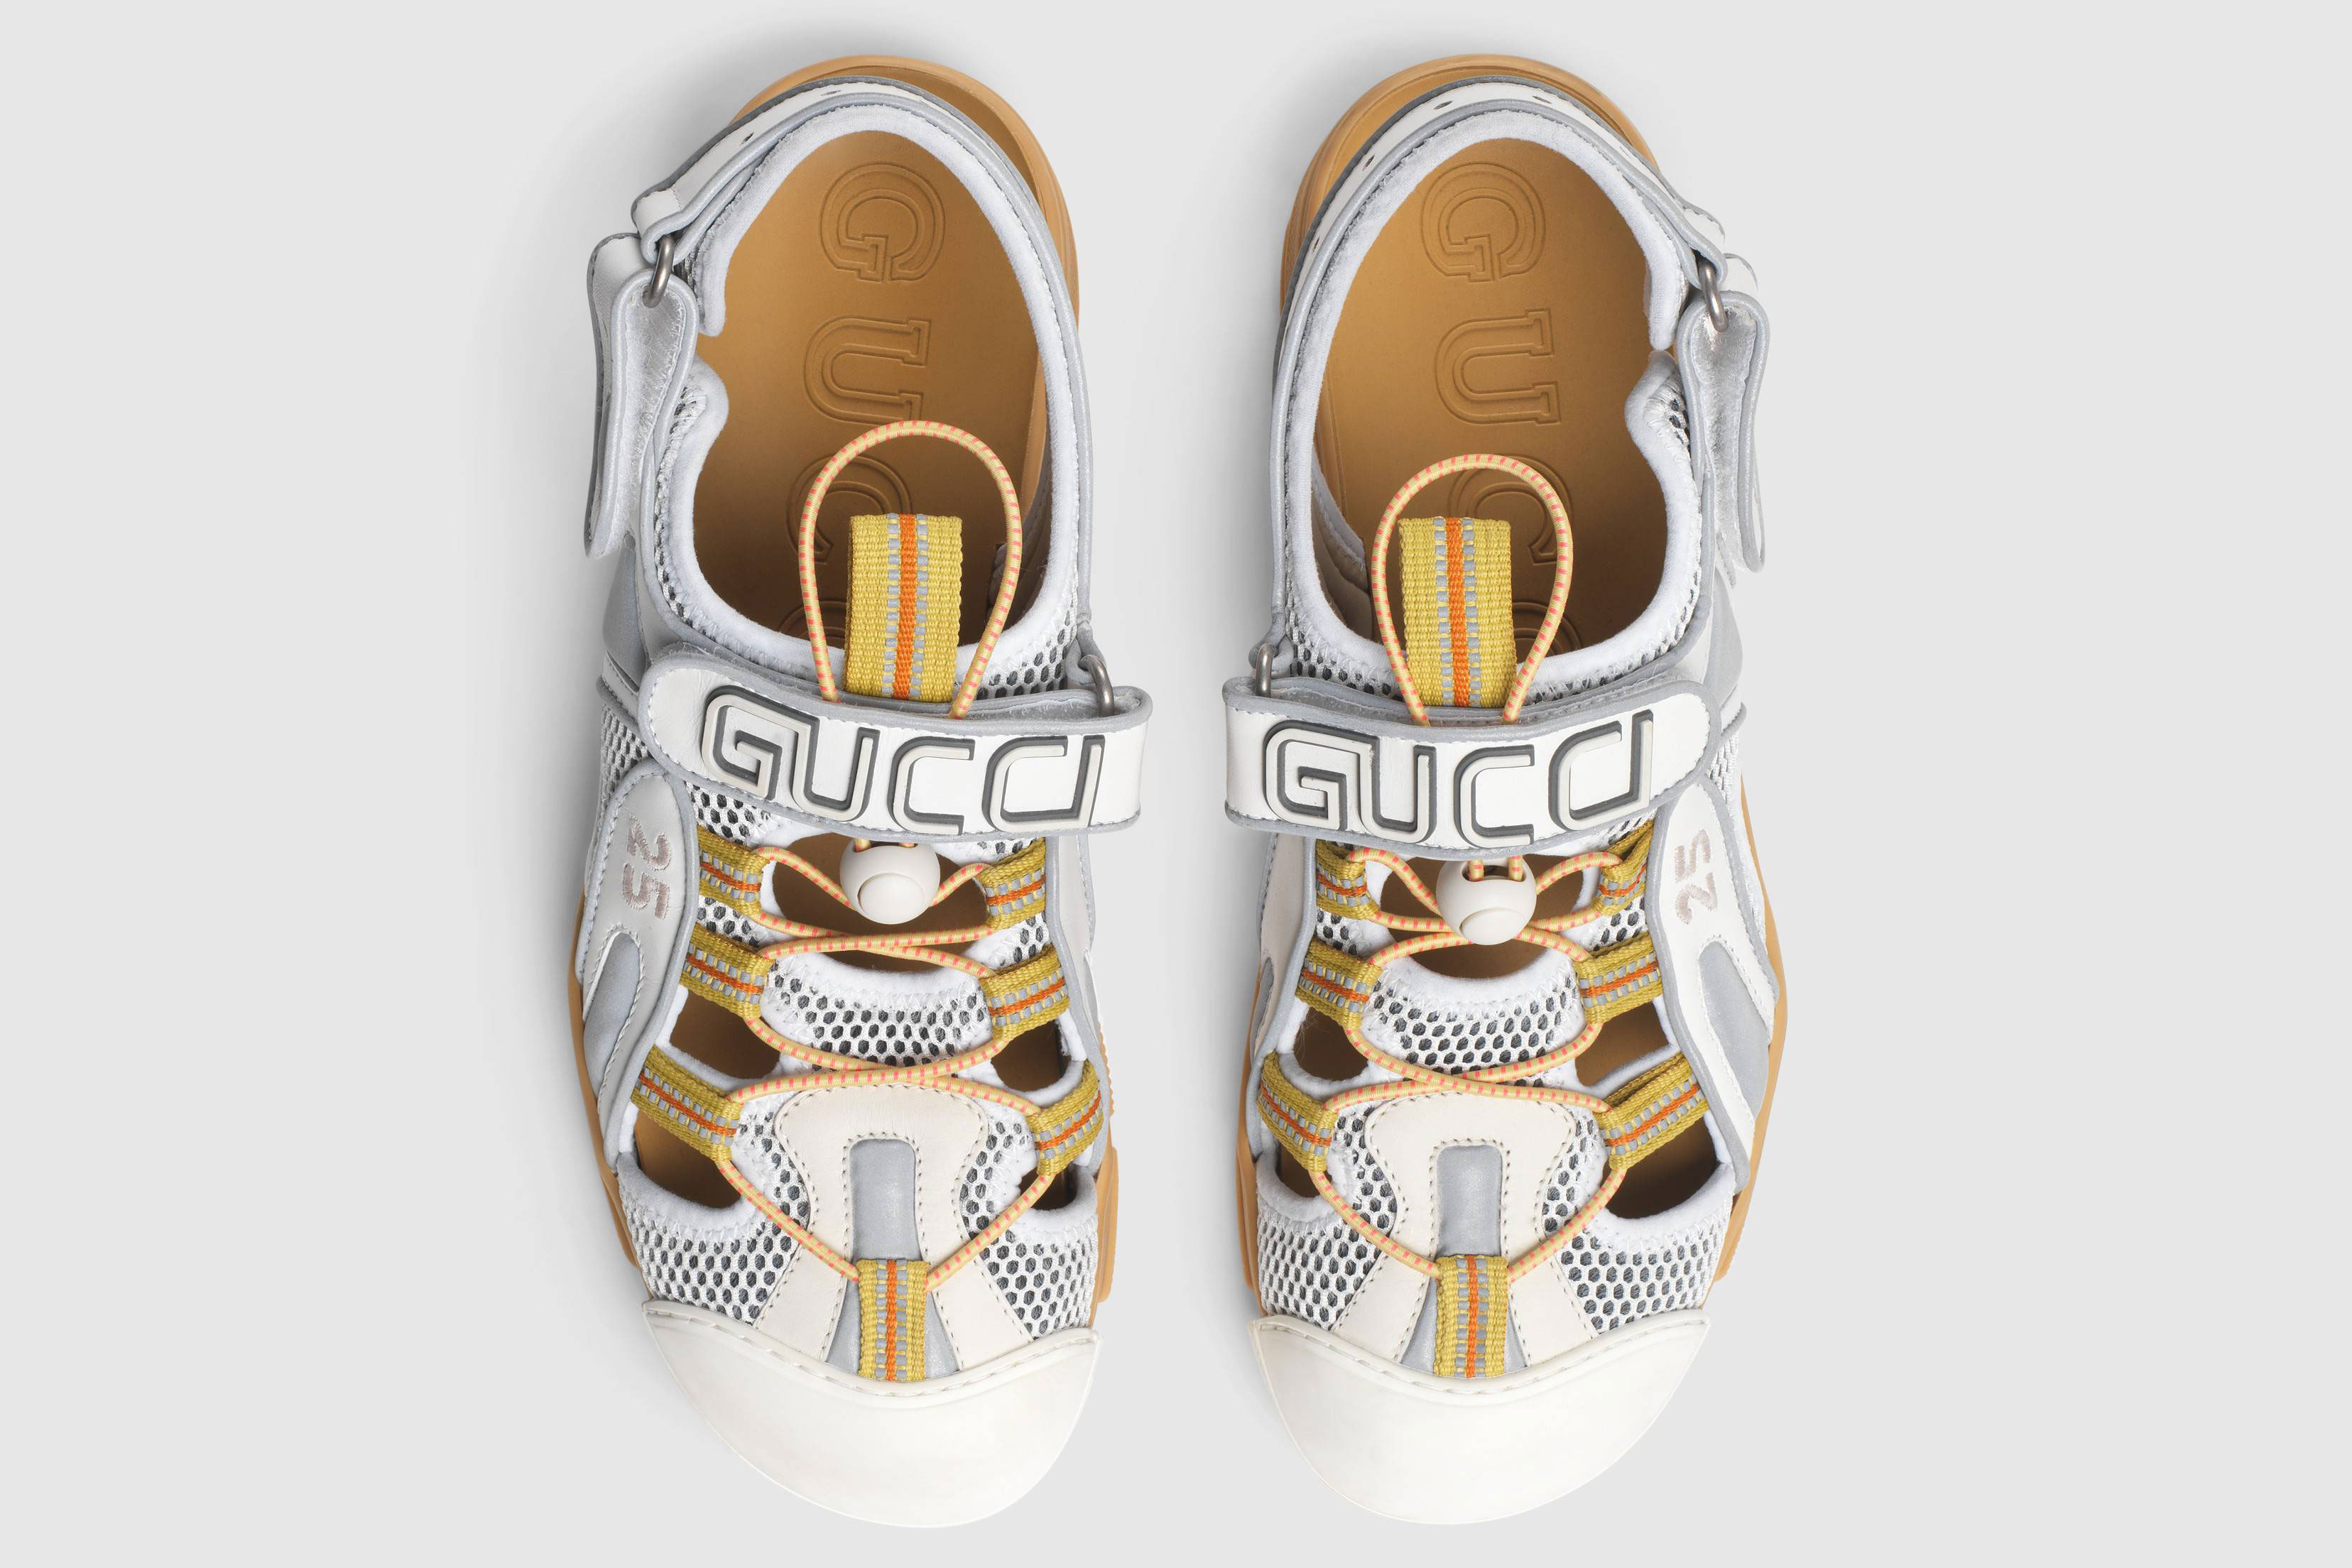 7ec7b6922d8 Gucci Launches  890 KEEN Knockoff